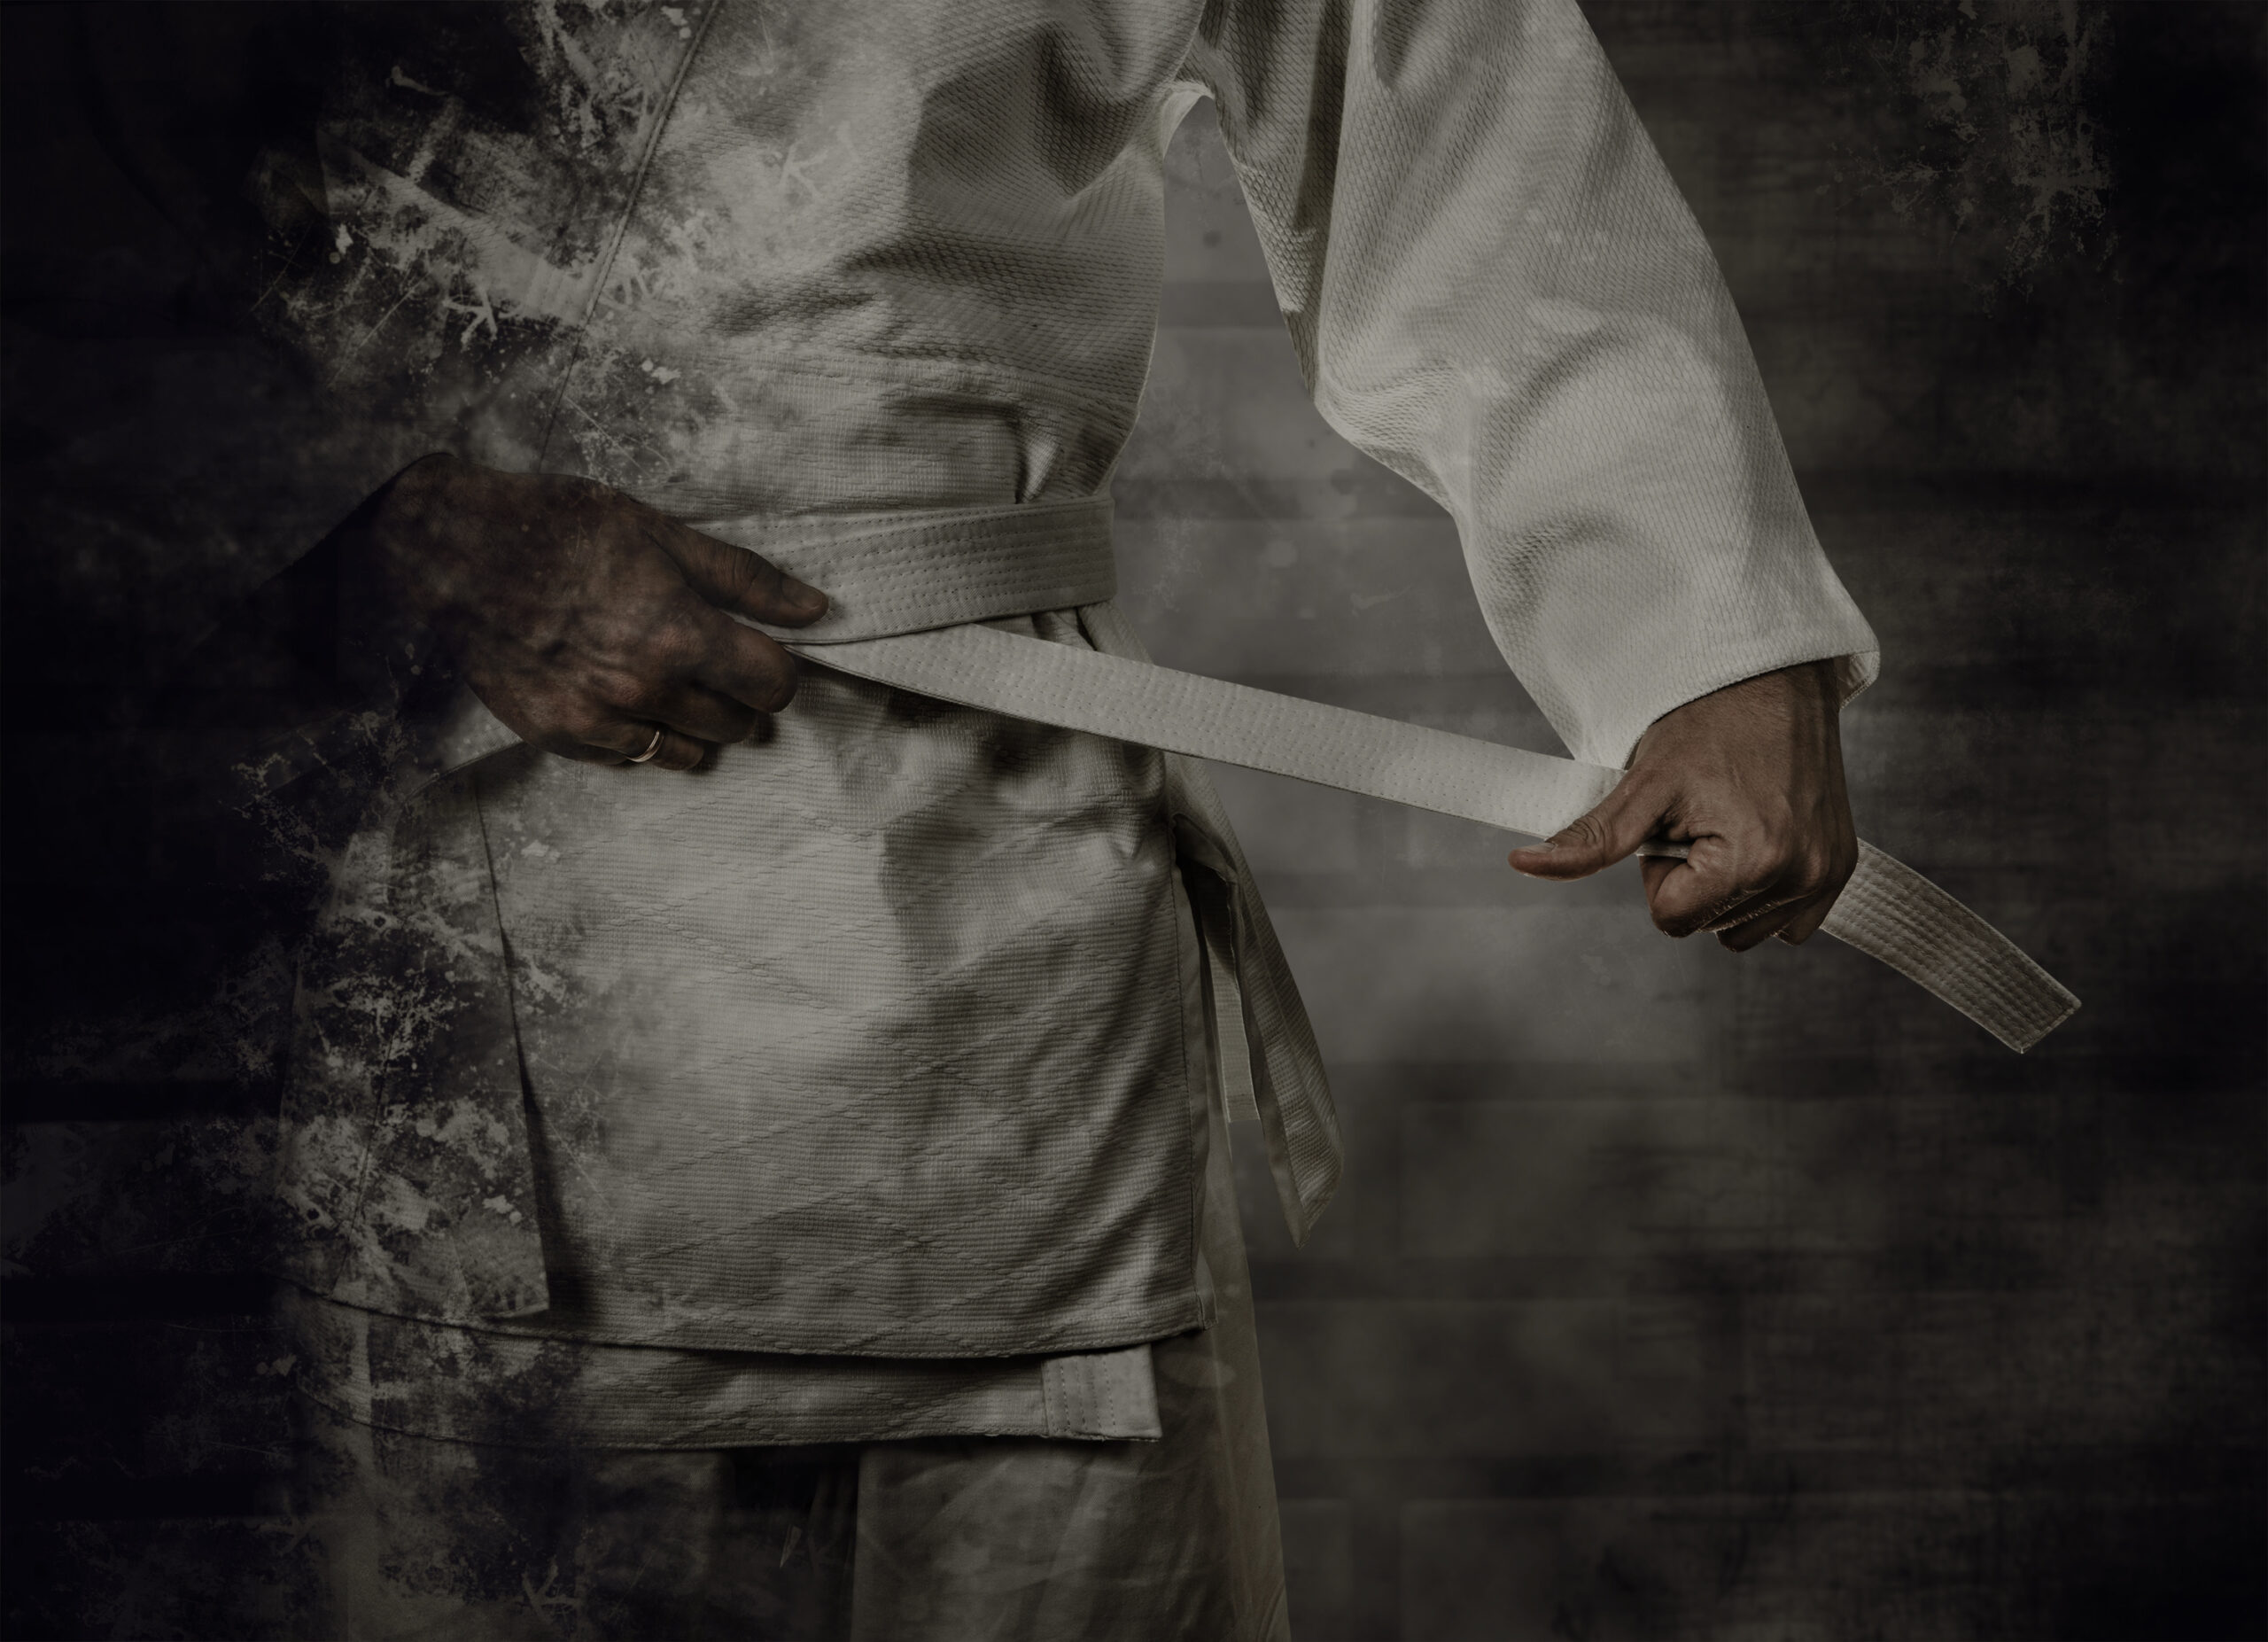 Karateka tying the white belt (obi) with grunge background